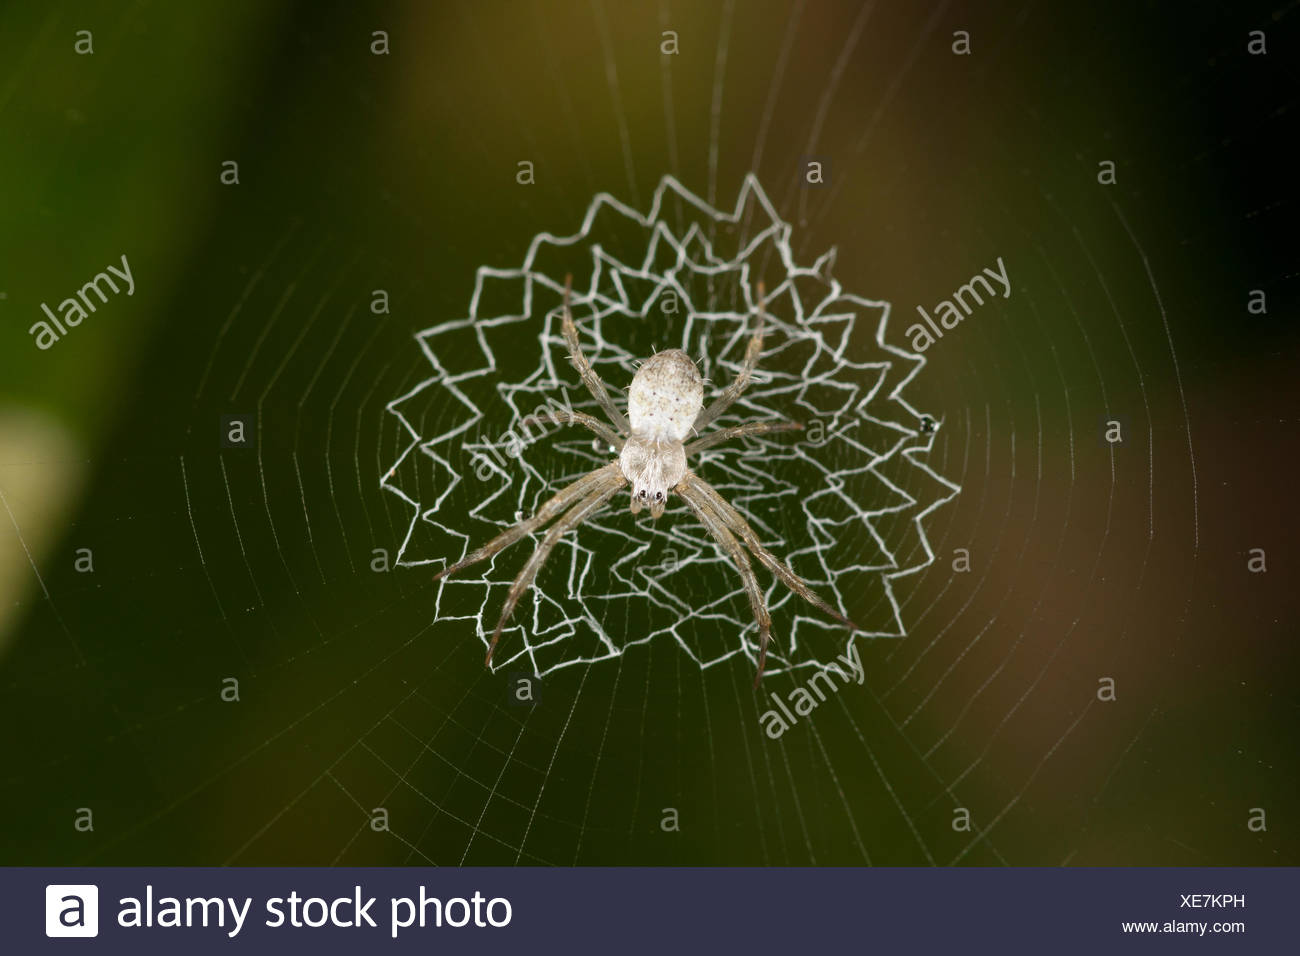 White spider (Araneidae) on web zig-zag stabilmentum Tanjung Puting National Park Borneo Central Kalimantan Indonesia - Stock Image